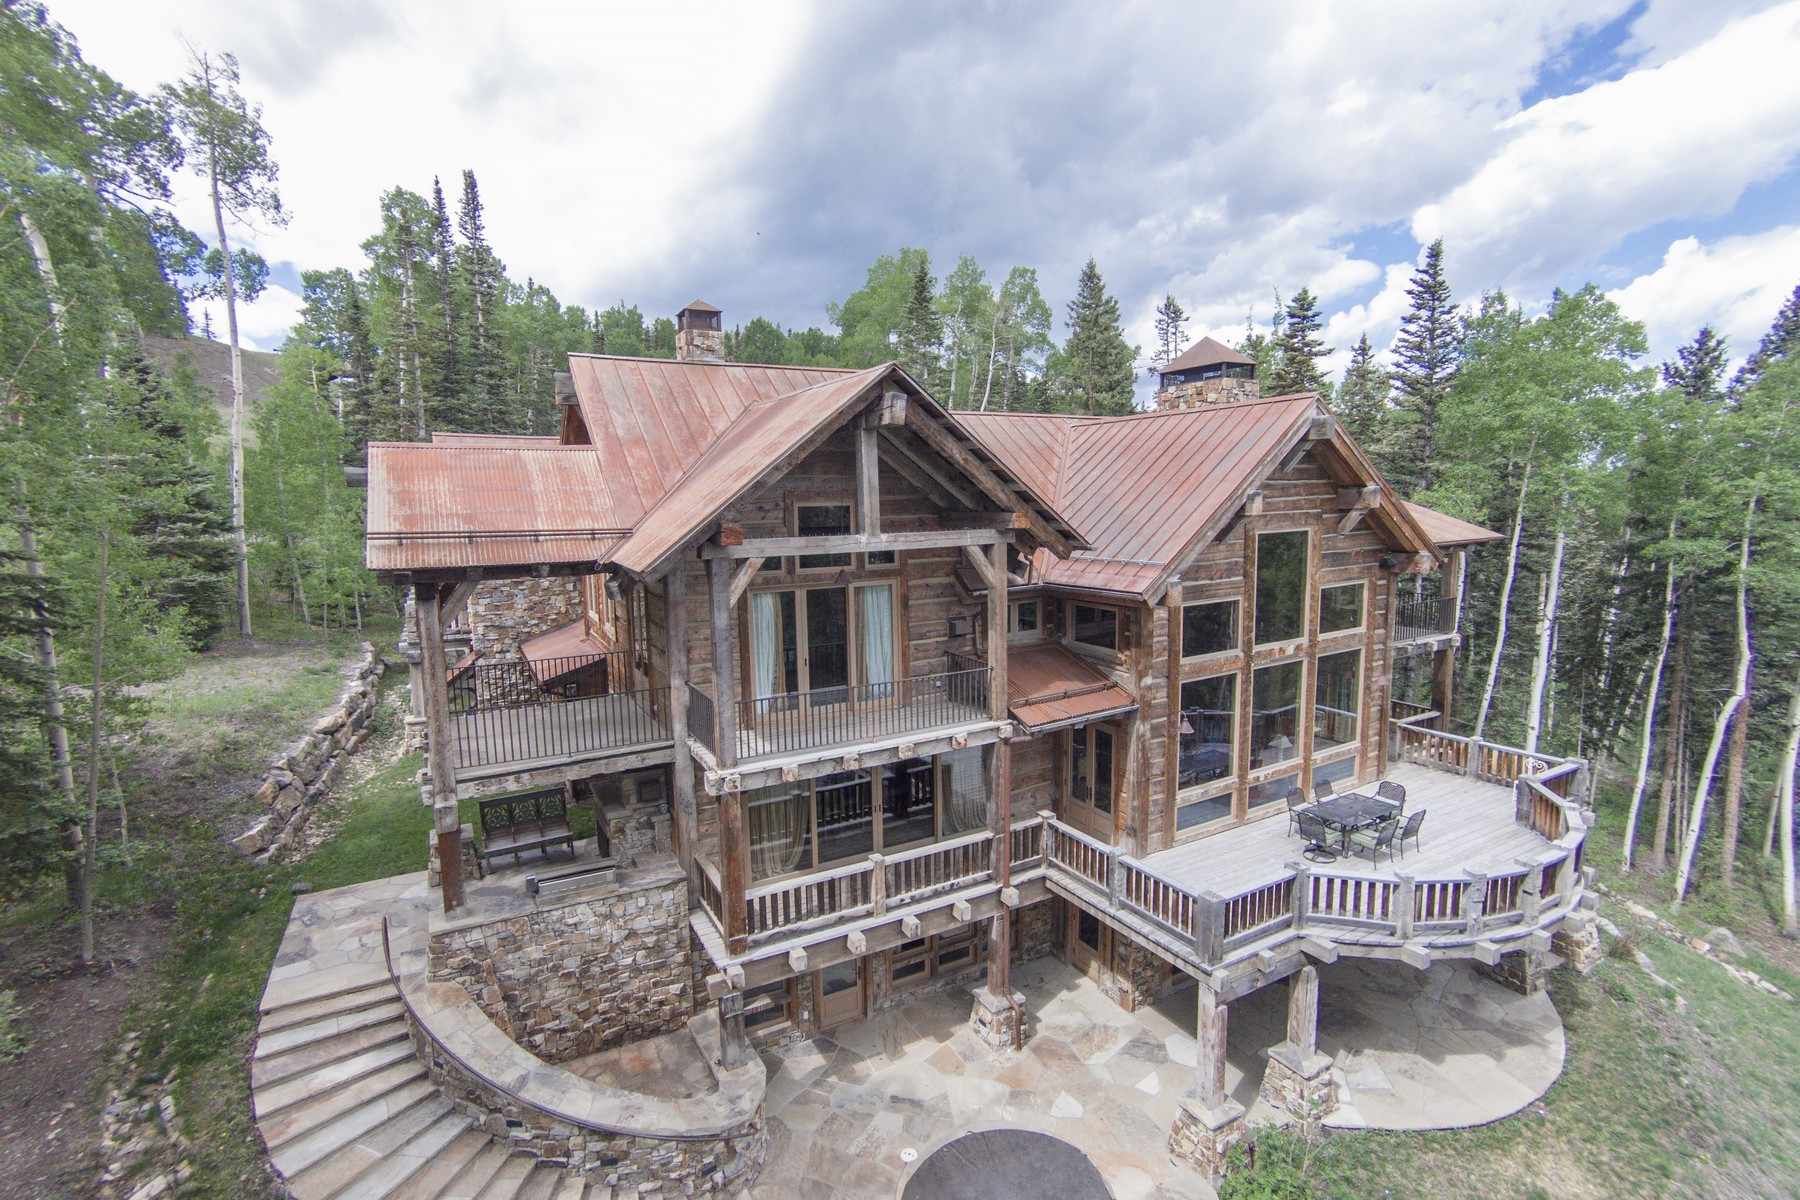 Single Family Home for Sale at 274 Benchmark Drive Telluride, Colorado 81435 United States